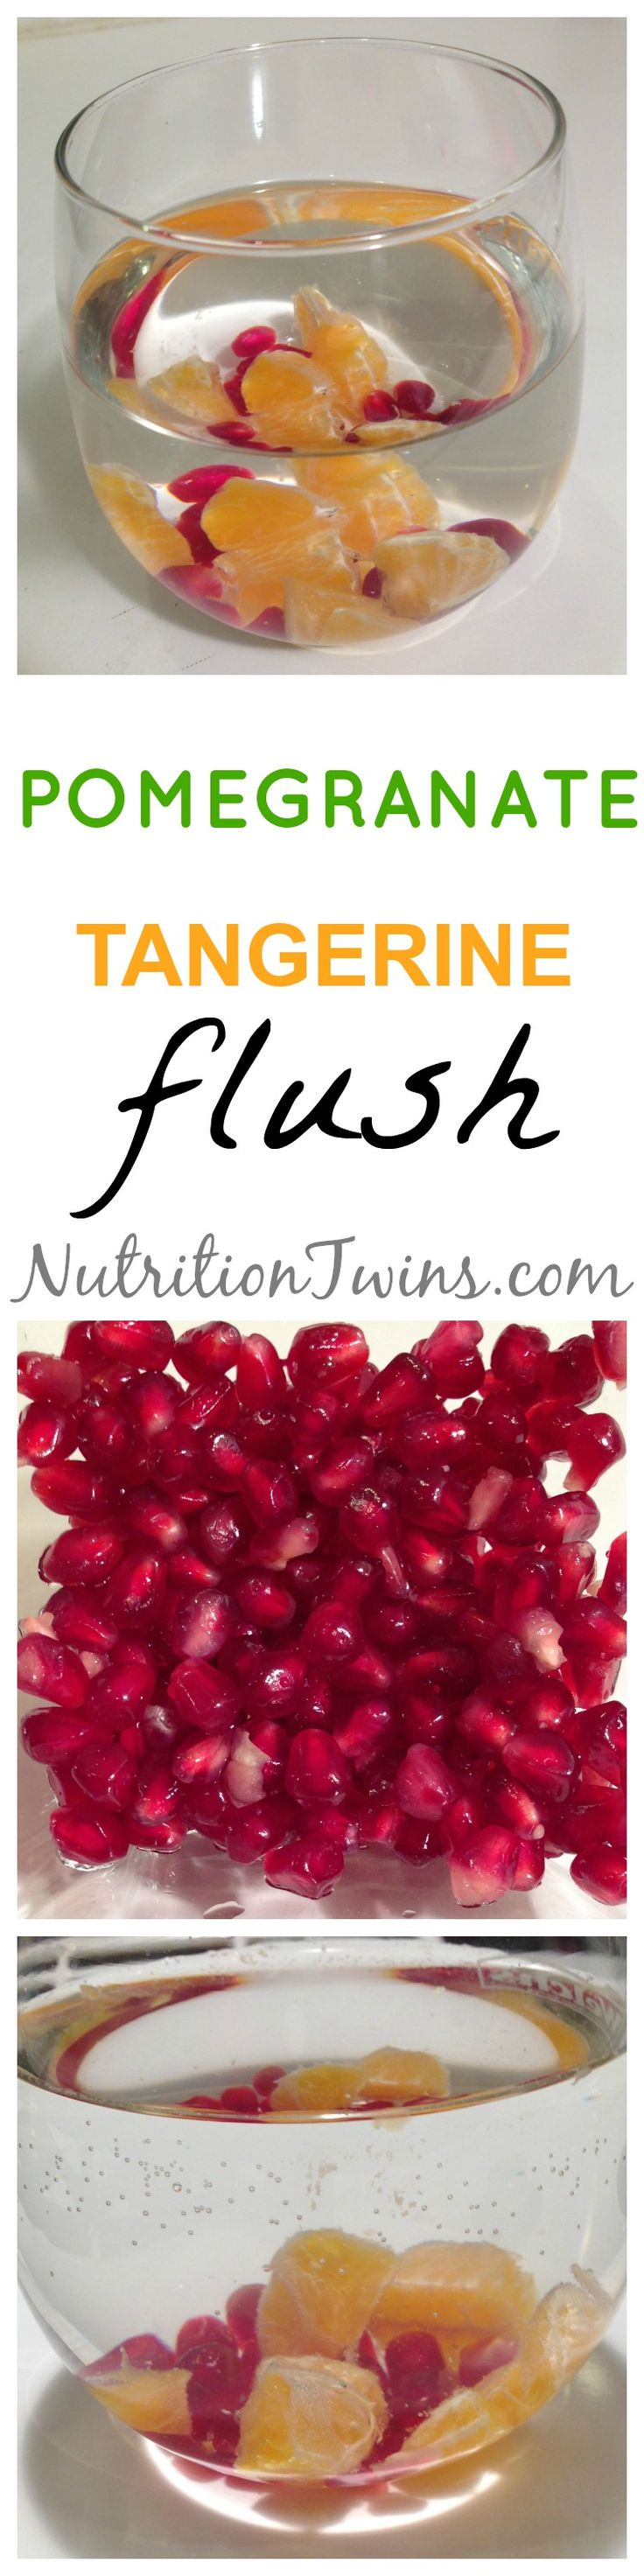 Pomegranate Tangerine Detox Flusher | Refreshing way to Flush Bloat & Restore Normal Fluid Balance | For MORE RECIPES please SIGN UP for our FREE NEWSLETTER www.NutritionTwins.com